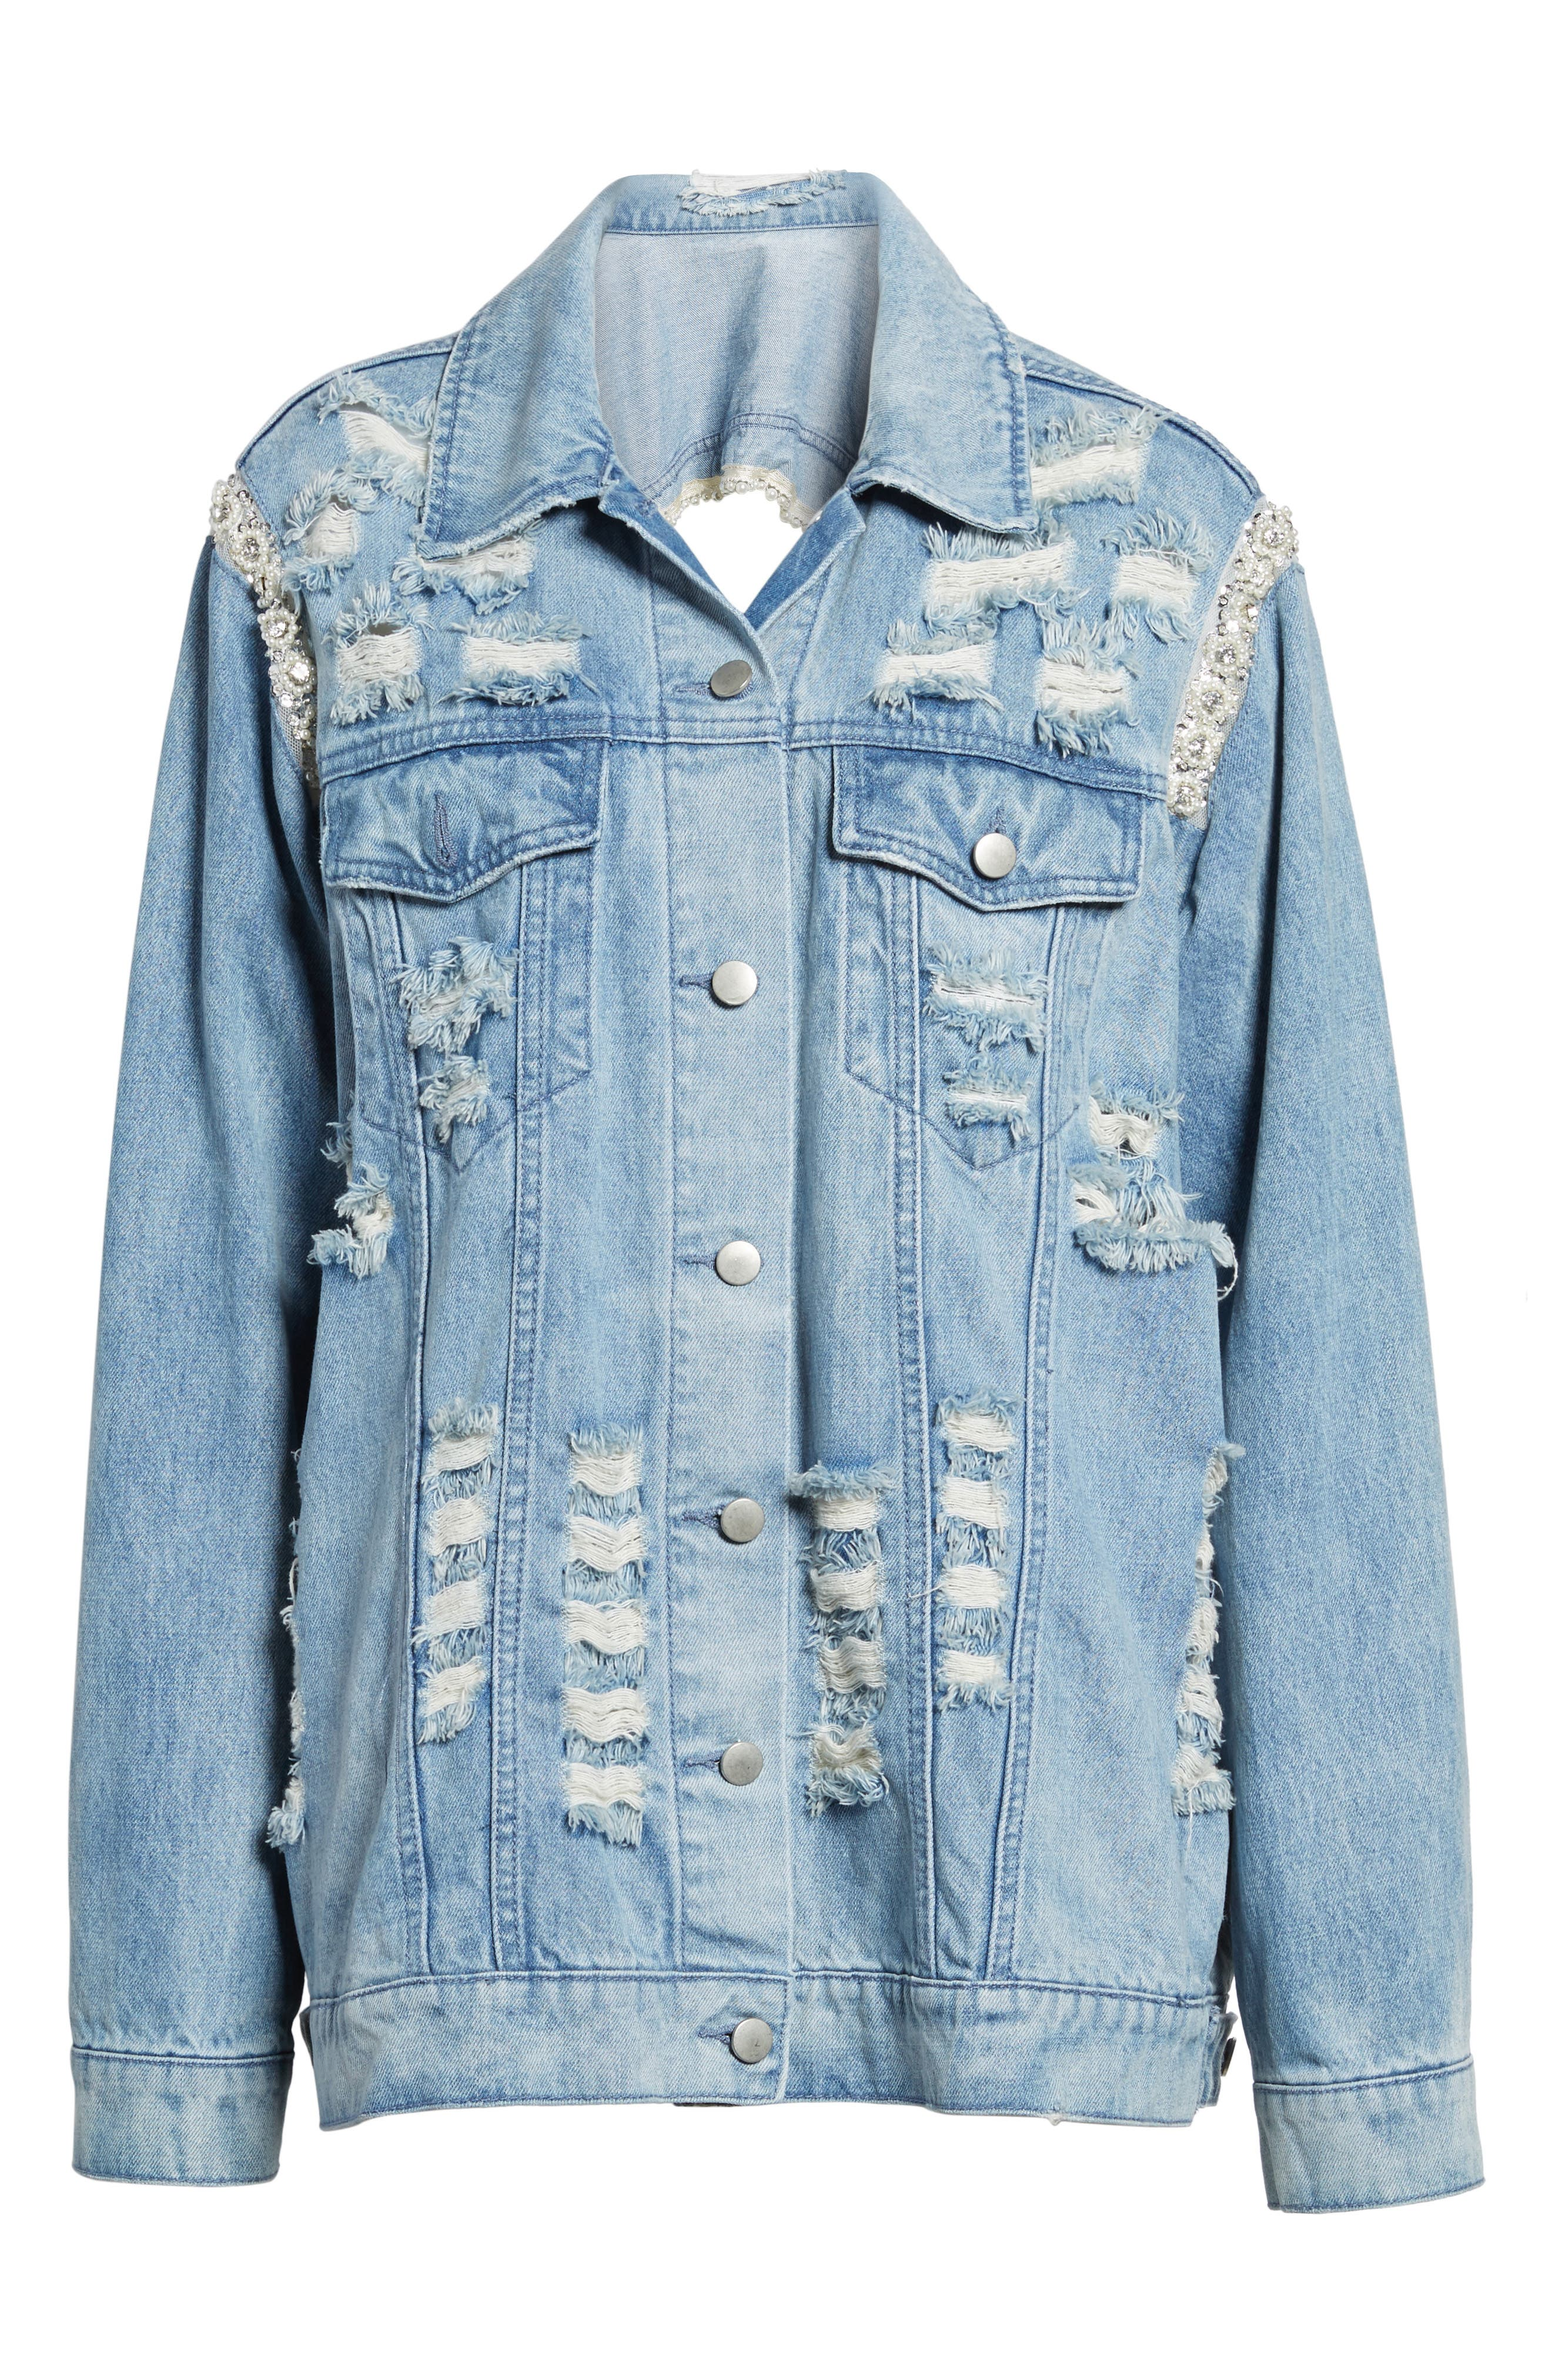 Embellished Ripped Denim Jacket,                             Alternate thumbnail 6, color,                             Blue W/ Pearls & Diamonds